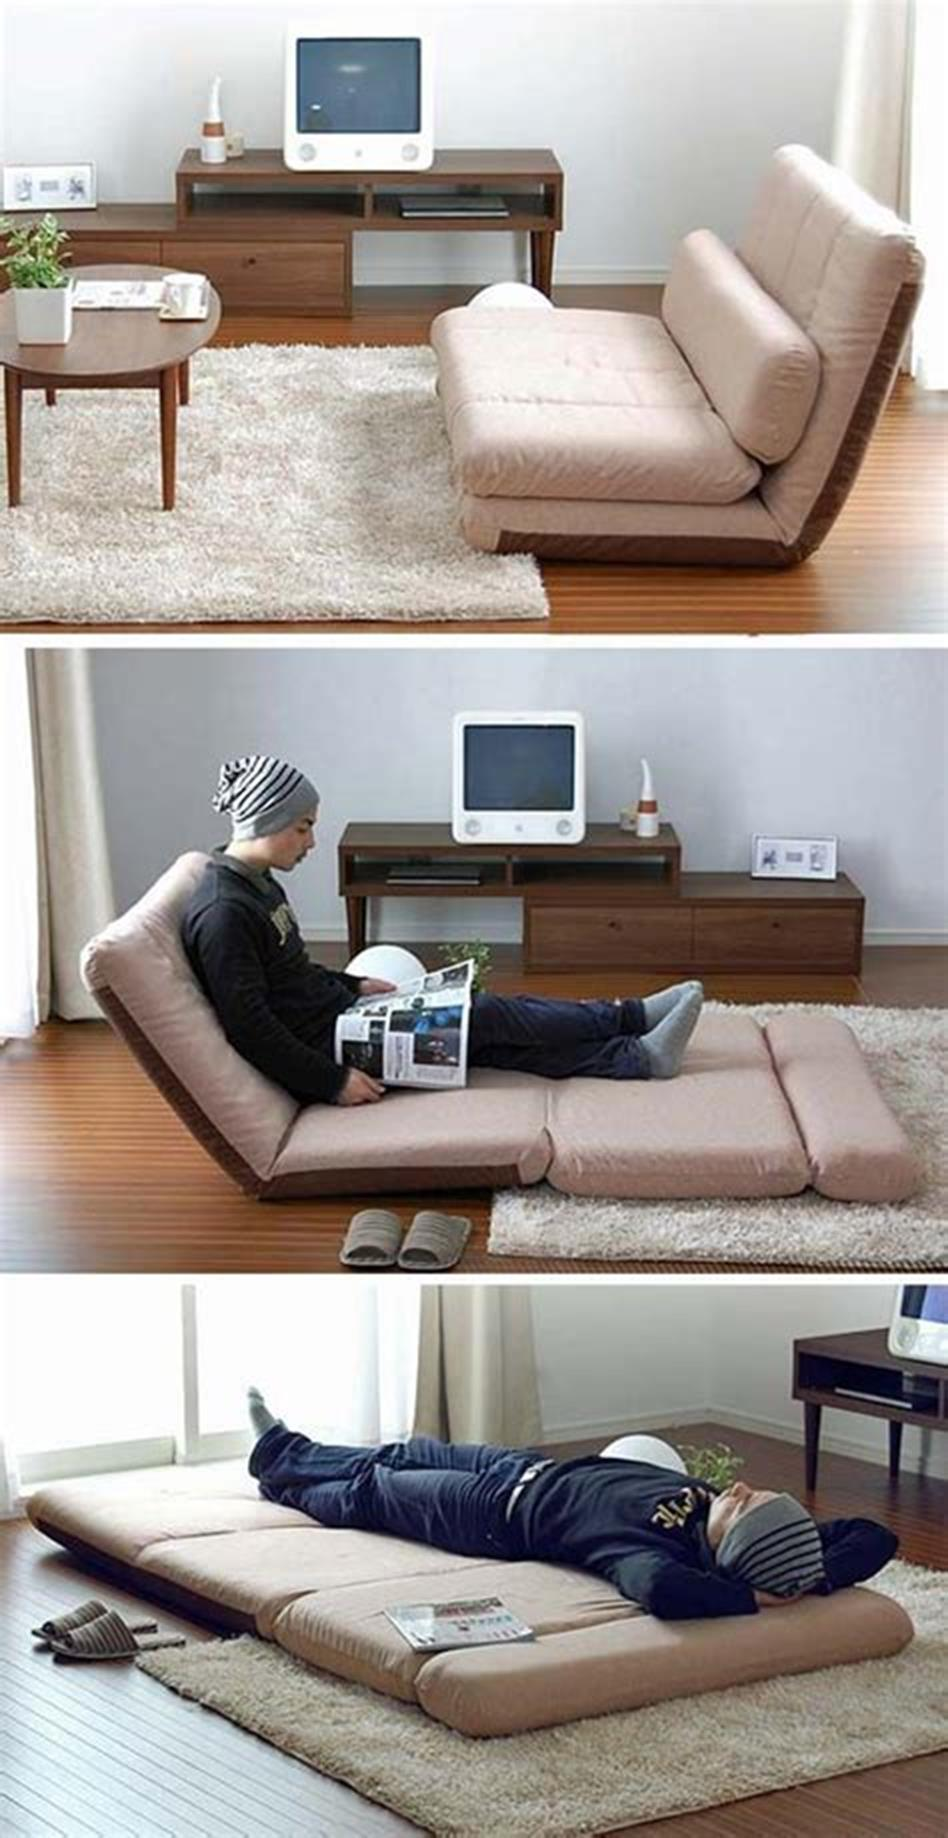 50 Amazing Ideas Furniture for Small Spaces Youll Love 17